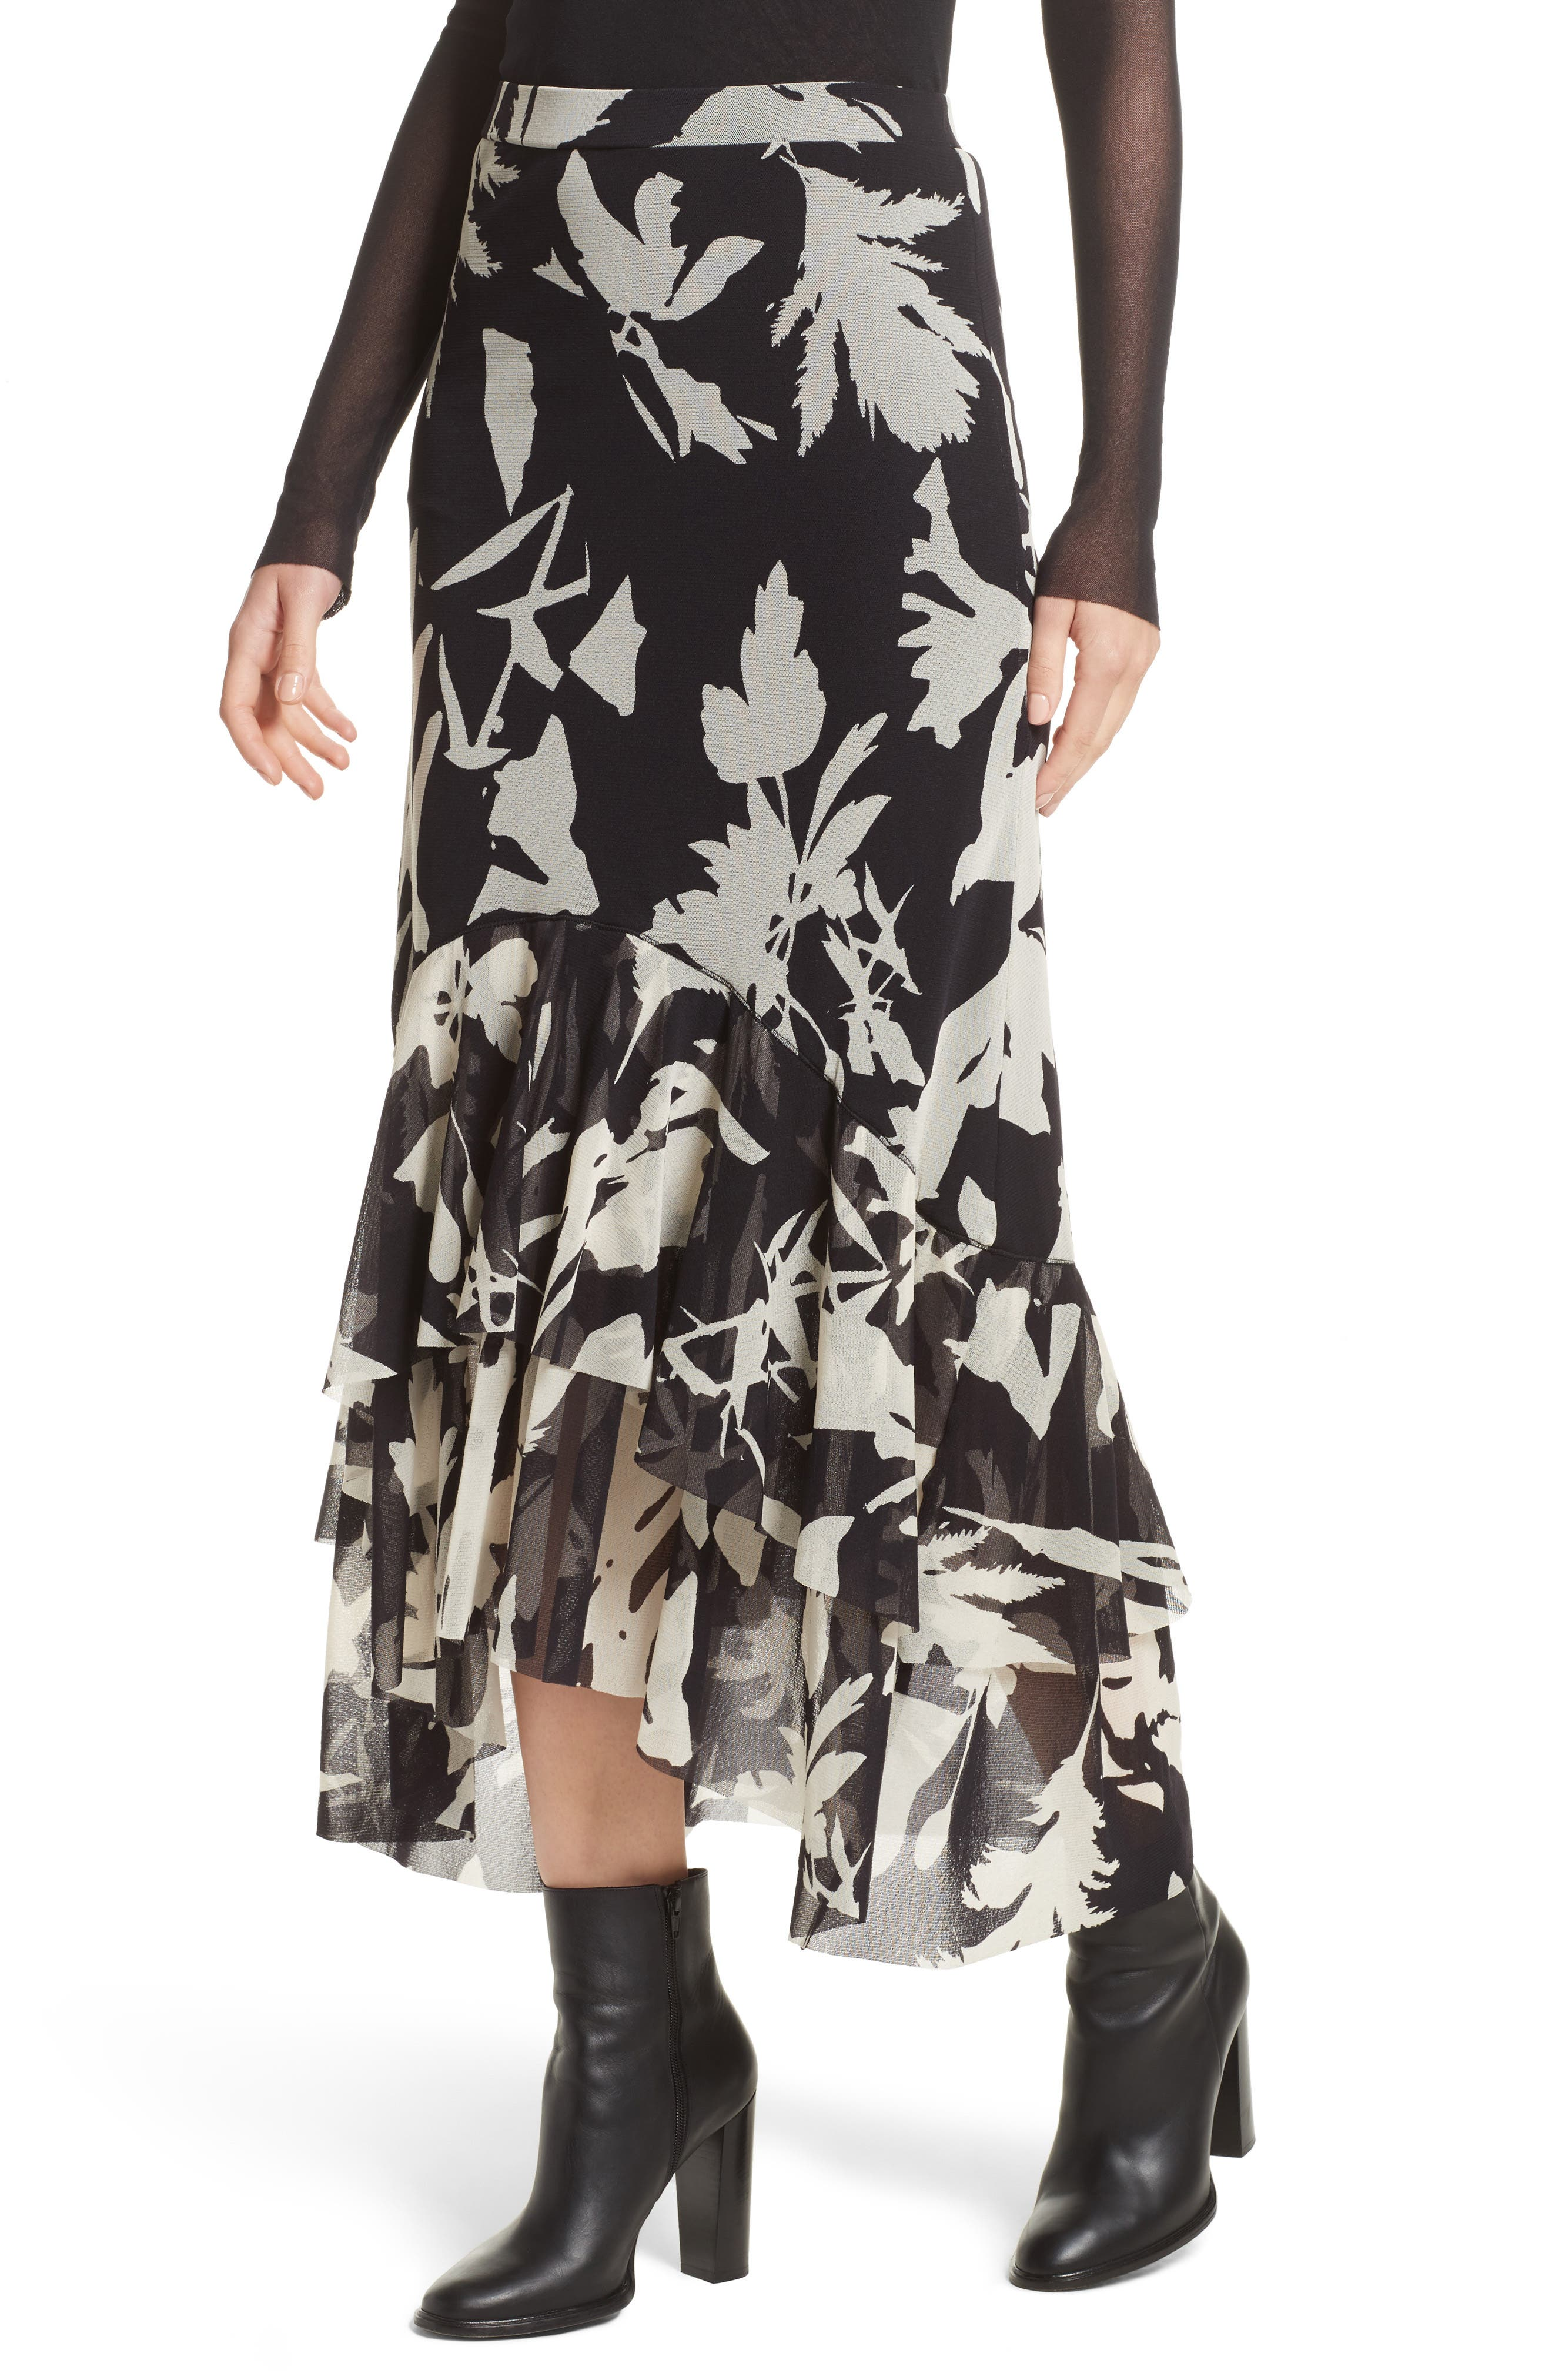 Floral Print Tulle Ruffle Skirt,                             Alternate thumbnail 4, color,                             001